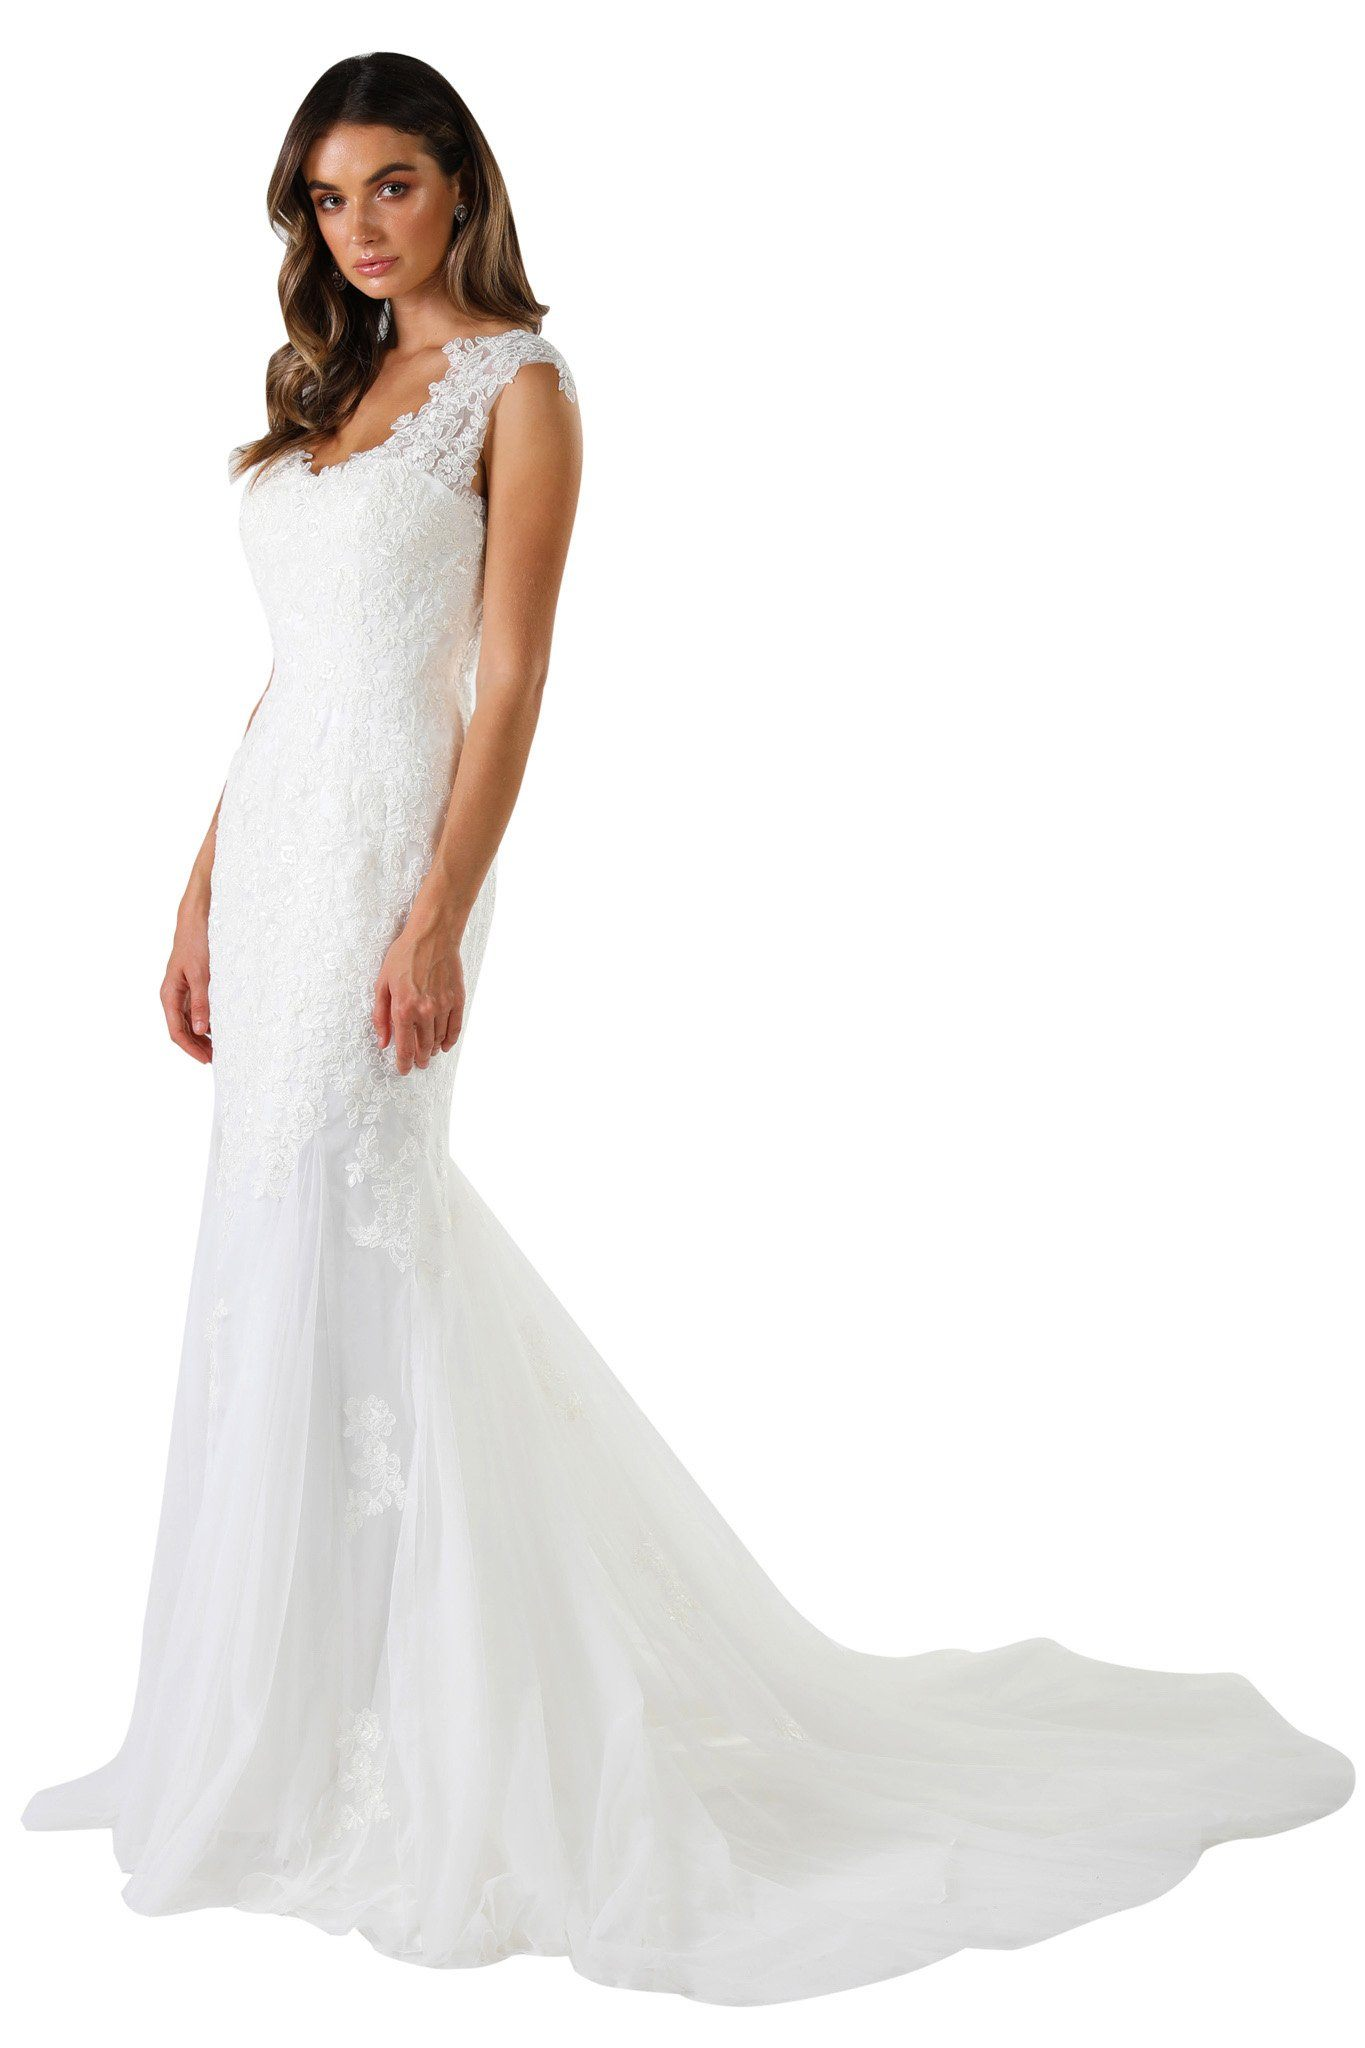 White sleeveless wedding dress with embroidered floral lace details throughout, fitted bodice, open back, long train